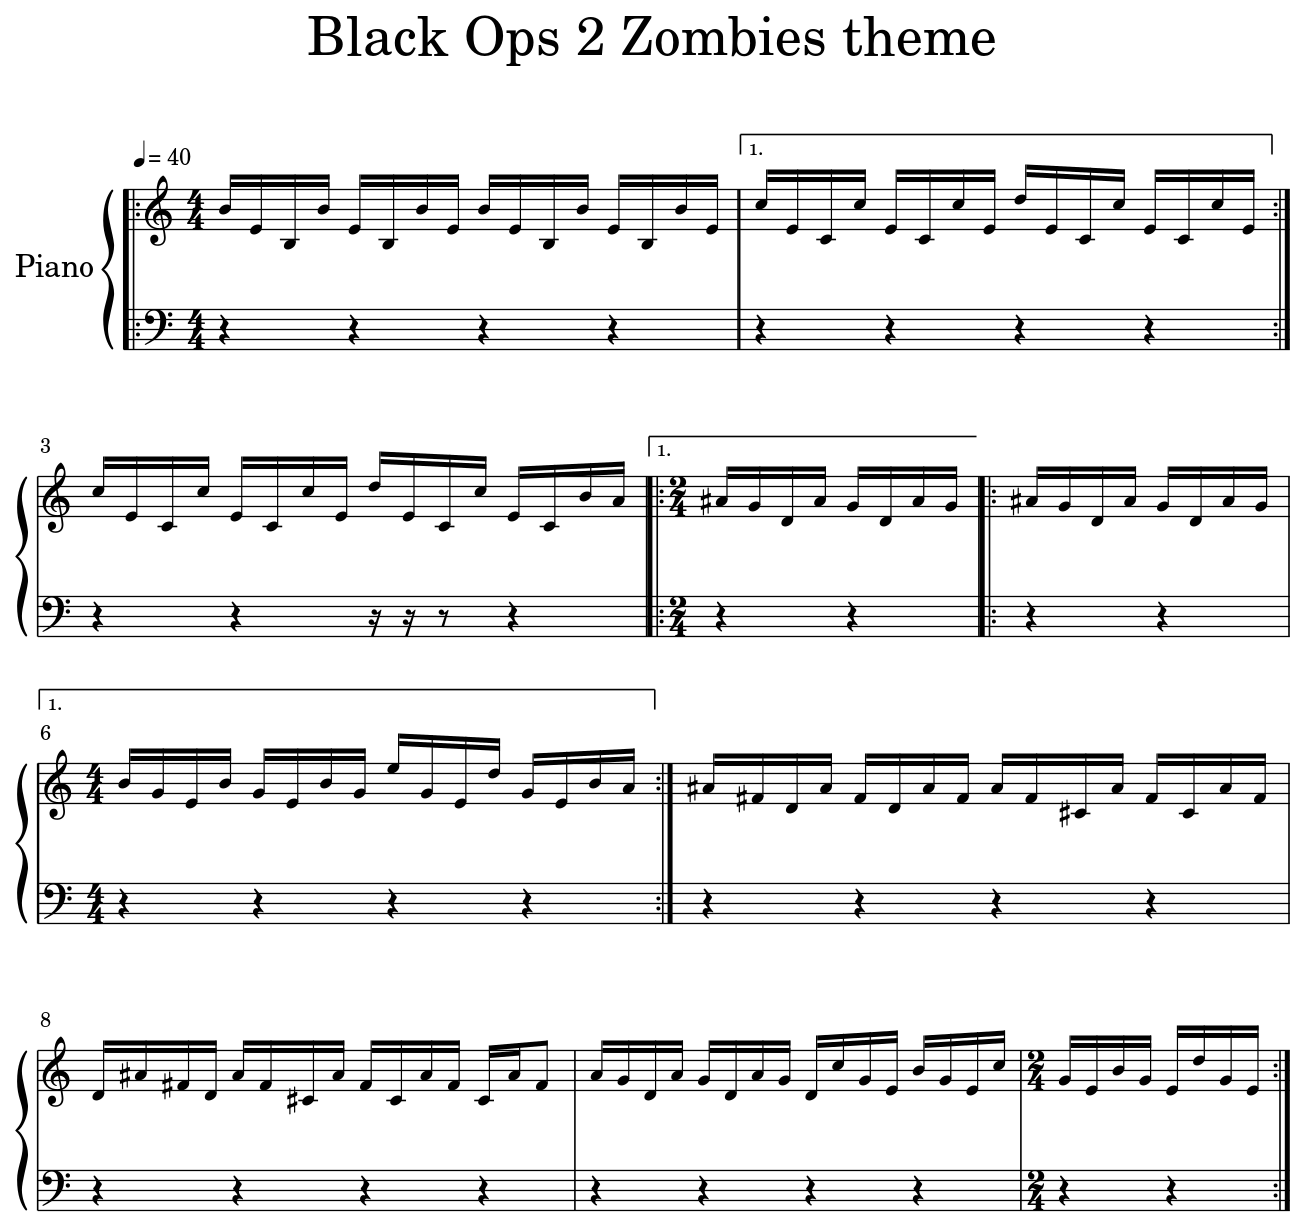 Black Ops 2 Zombies Theme